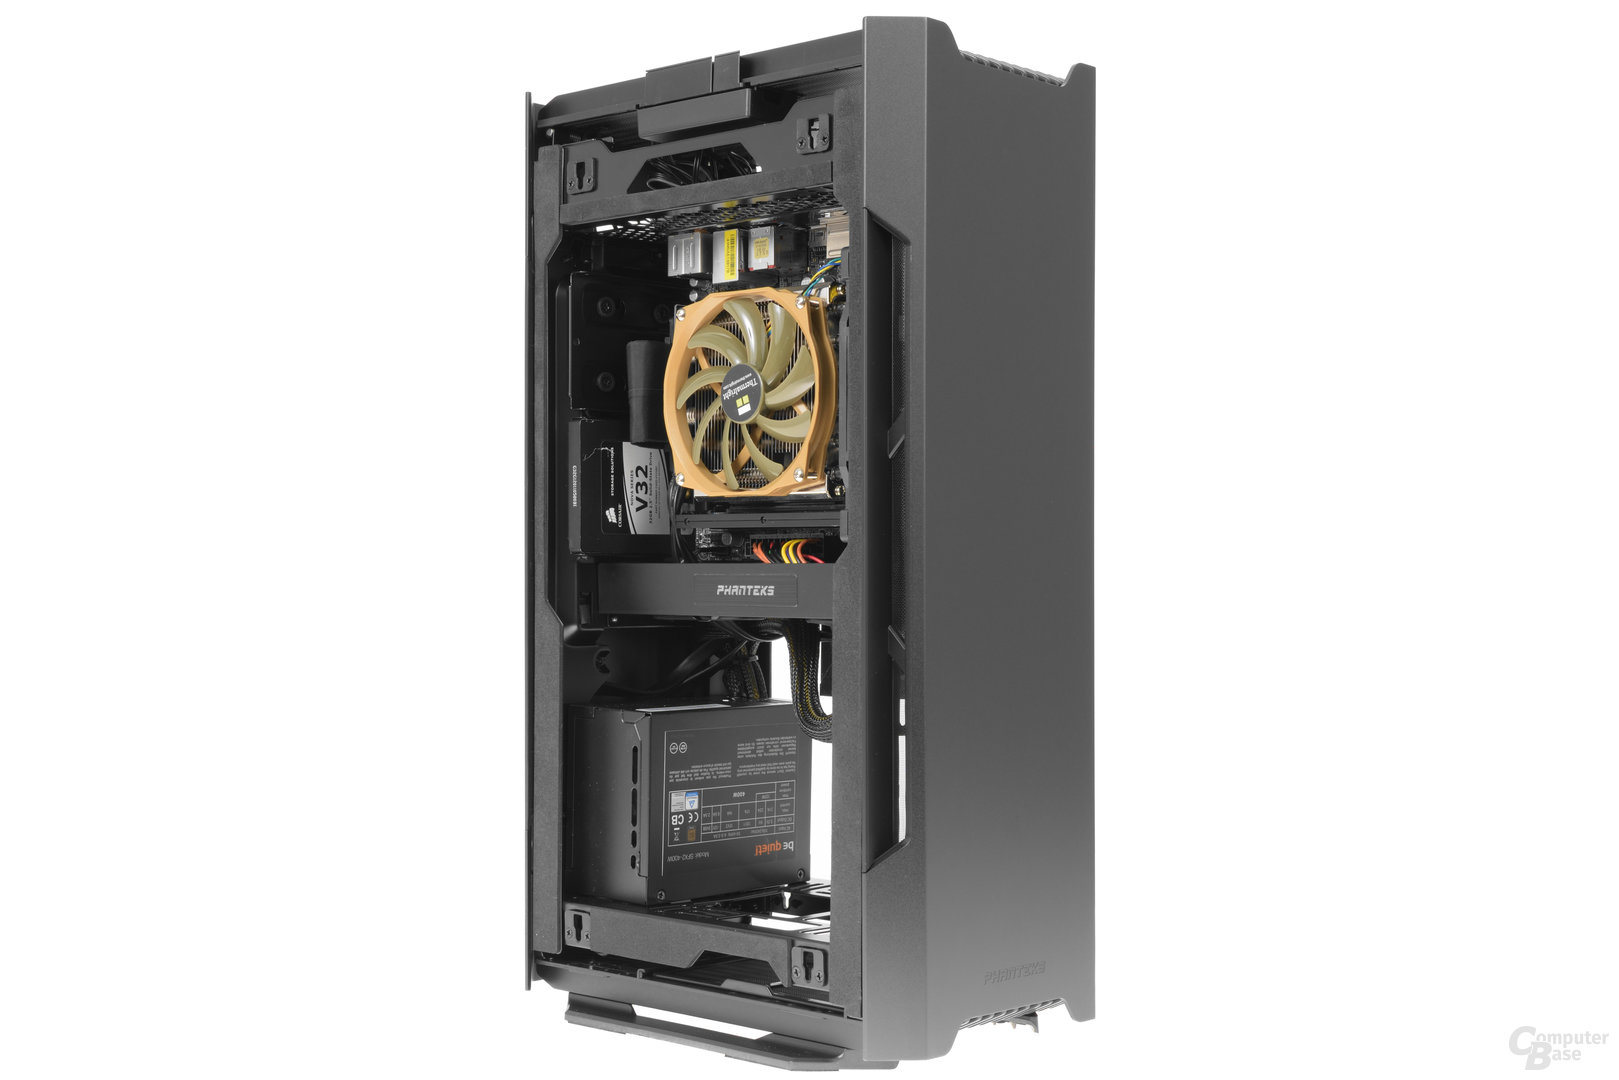 Phanteks Enthoo Evolv Shift – Testsystem